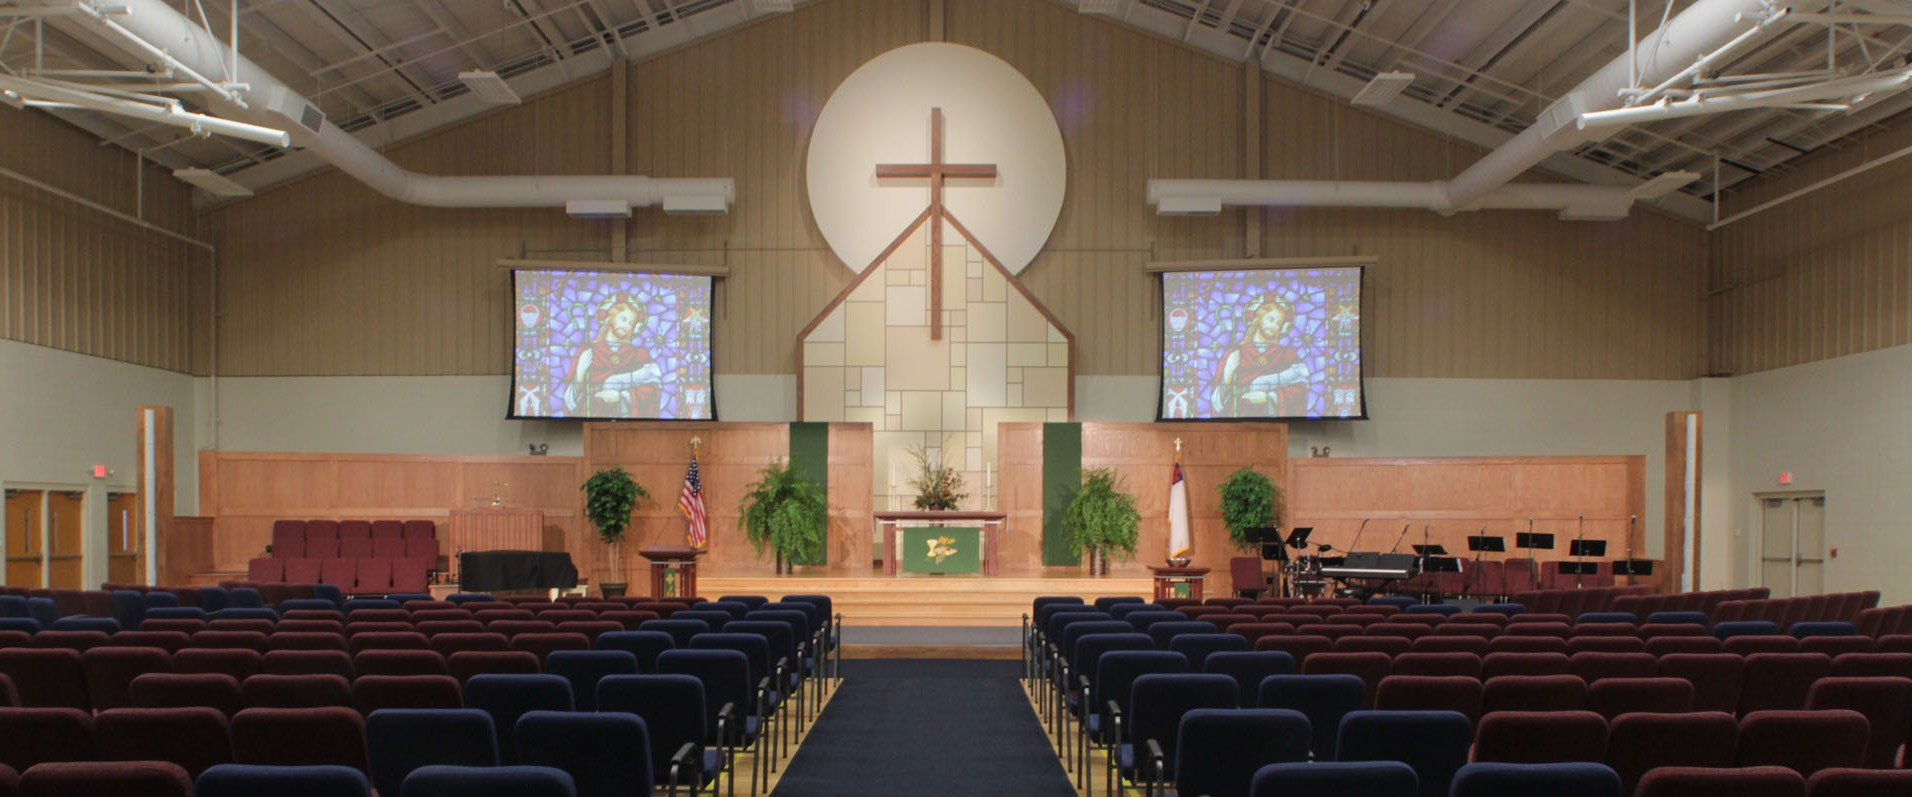 Church Sanctuary Stage